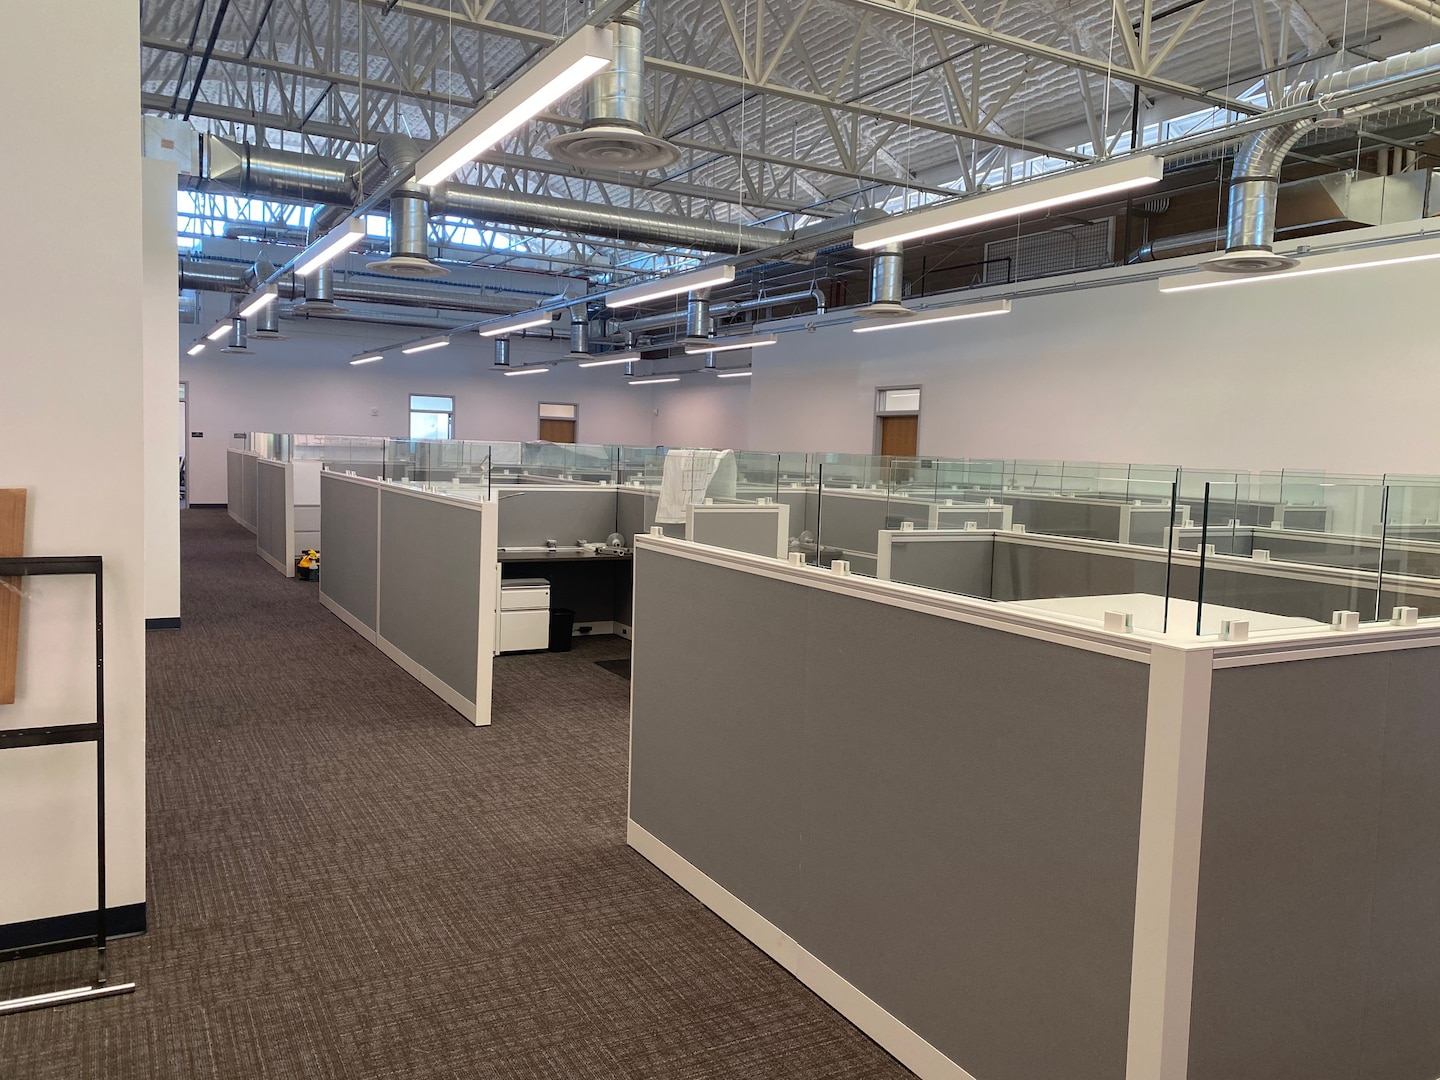 Renovated office space with new cubicles pictured.